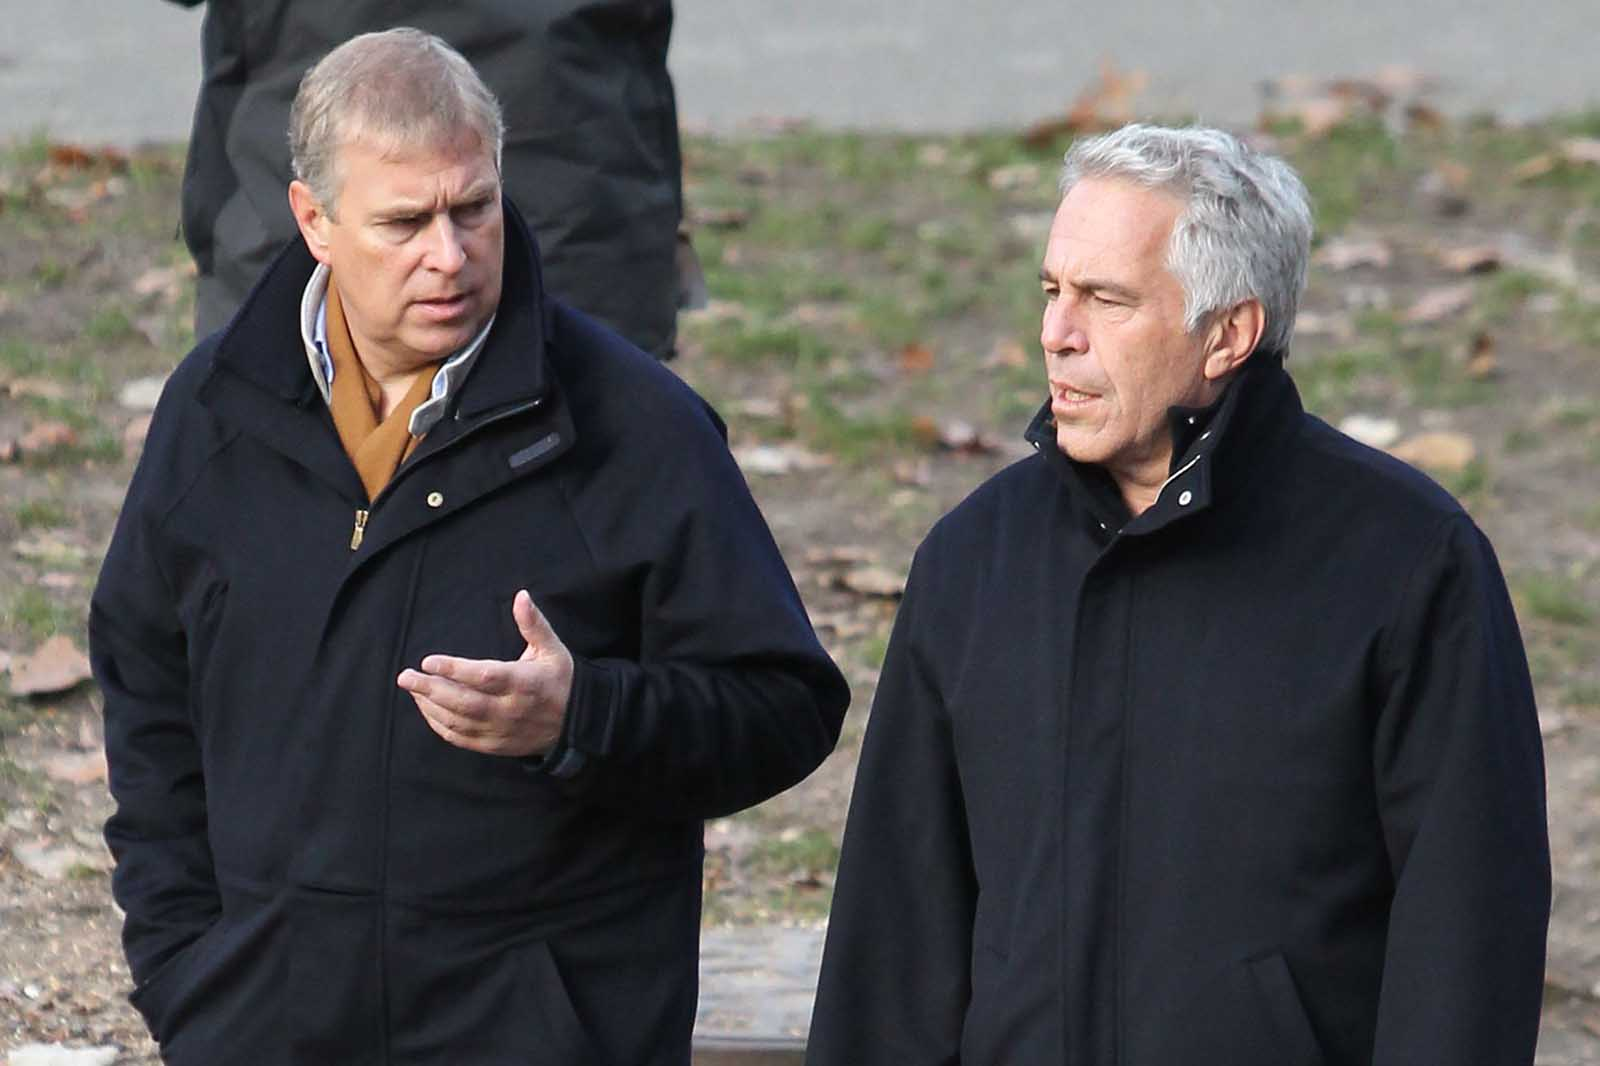 With documents coming out thanks to the Ghislaine Maxwell case, many are wondering if the famous friends of Jeffrey Epstein are going down too.